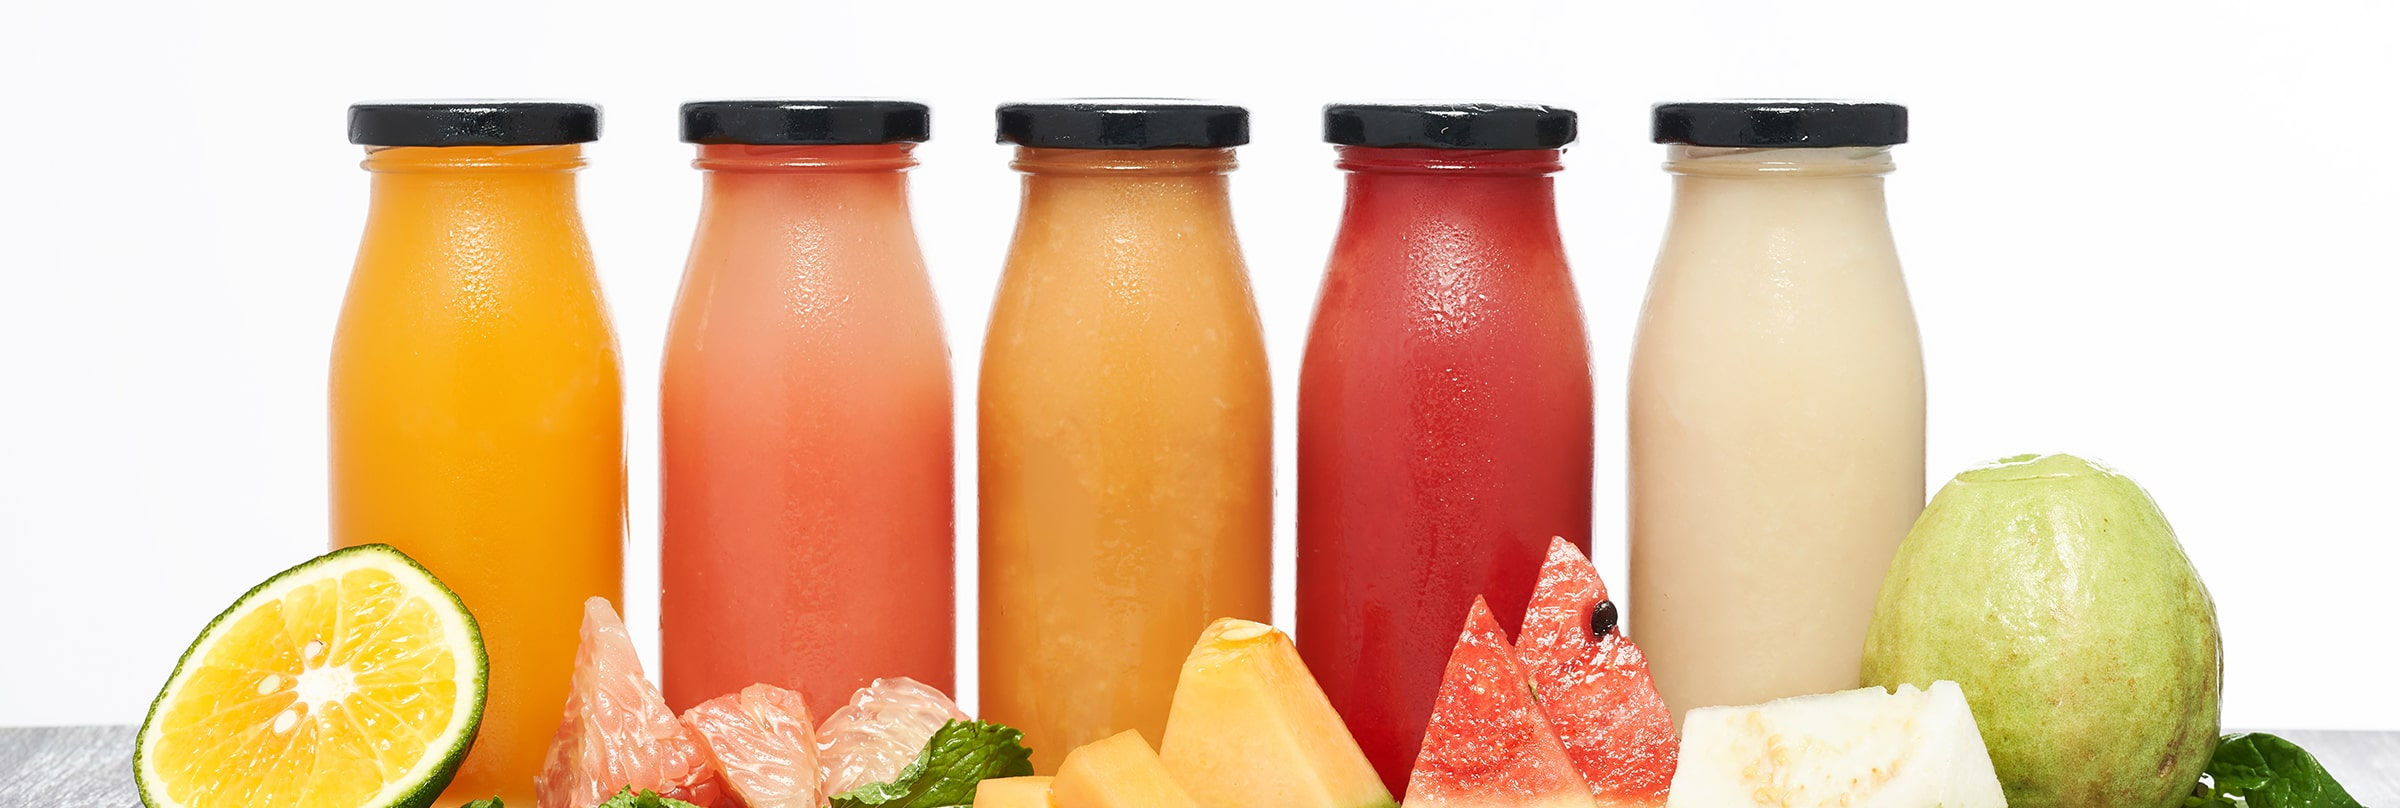 Functional Beverages are Here to Stay – Leahy-IFP